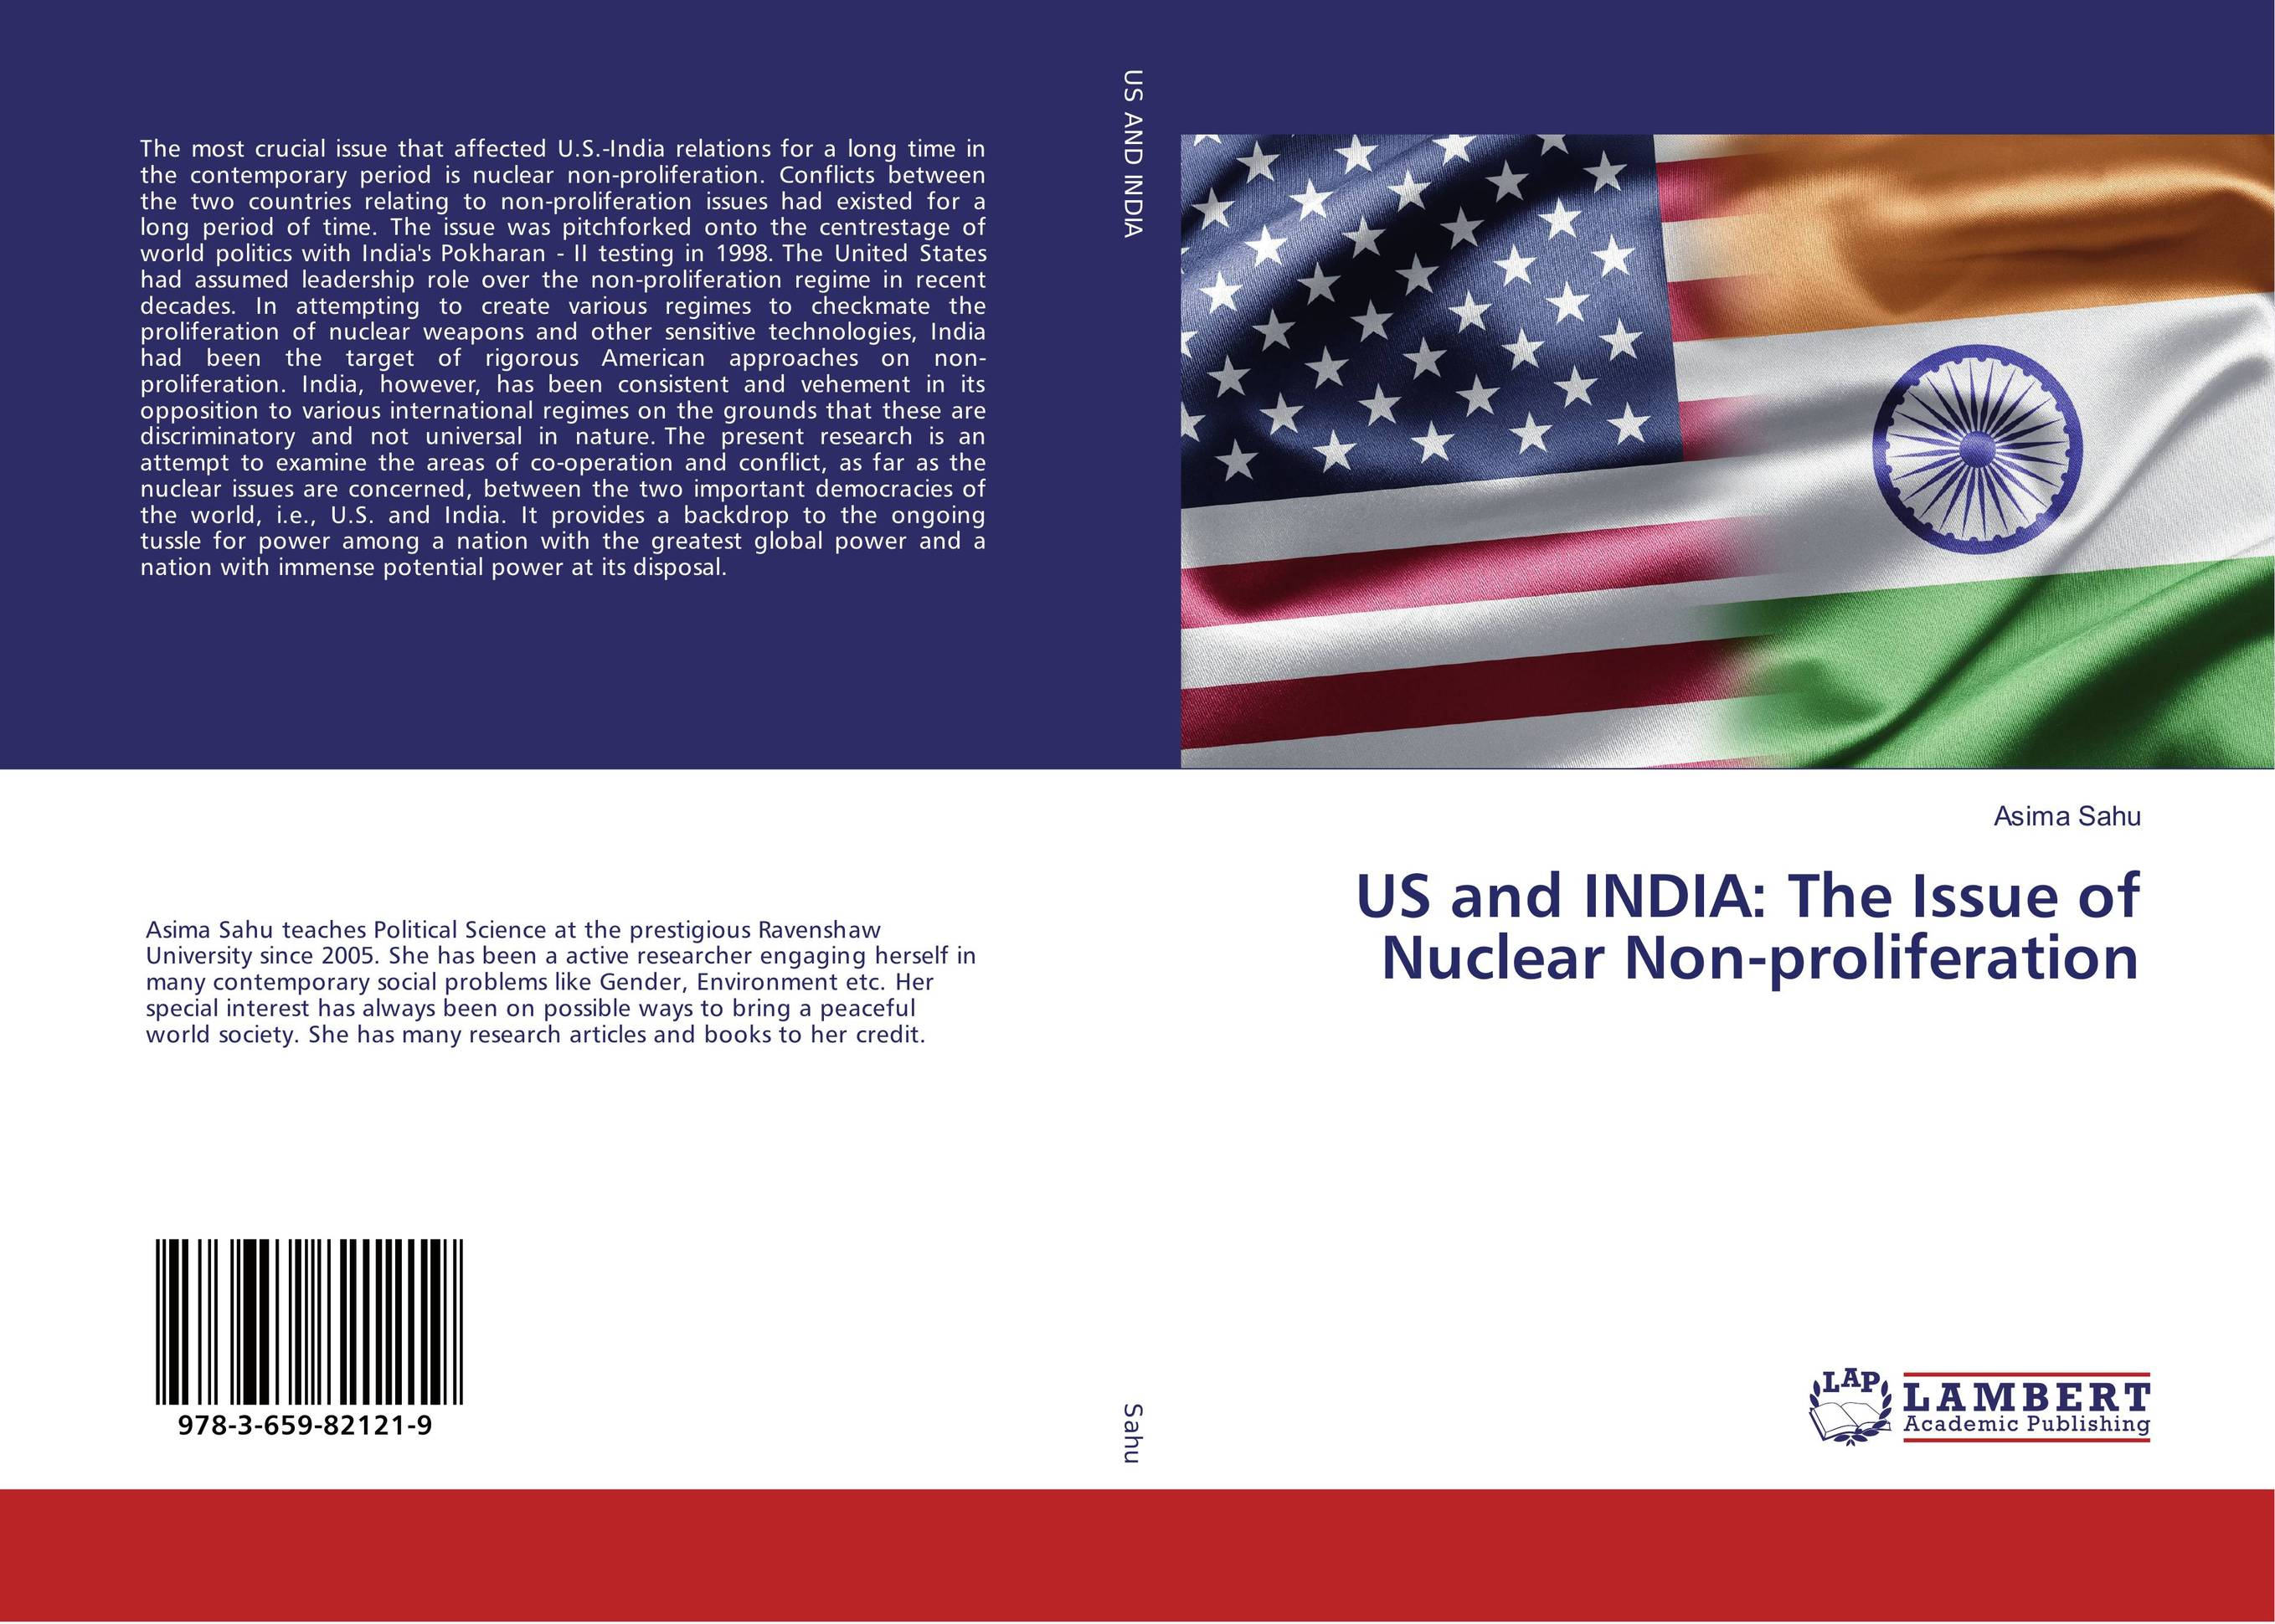 US and INDIA: The Issue of Nuclear Non-proliferation lidiya strautman introduction to the world of nuclear physics